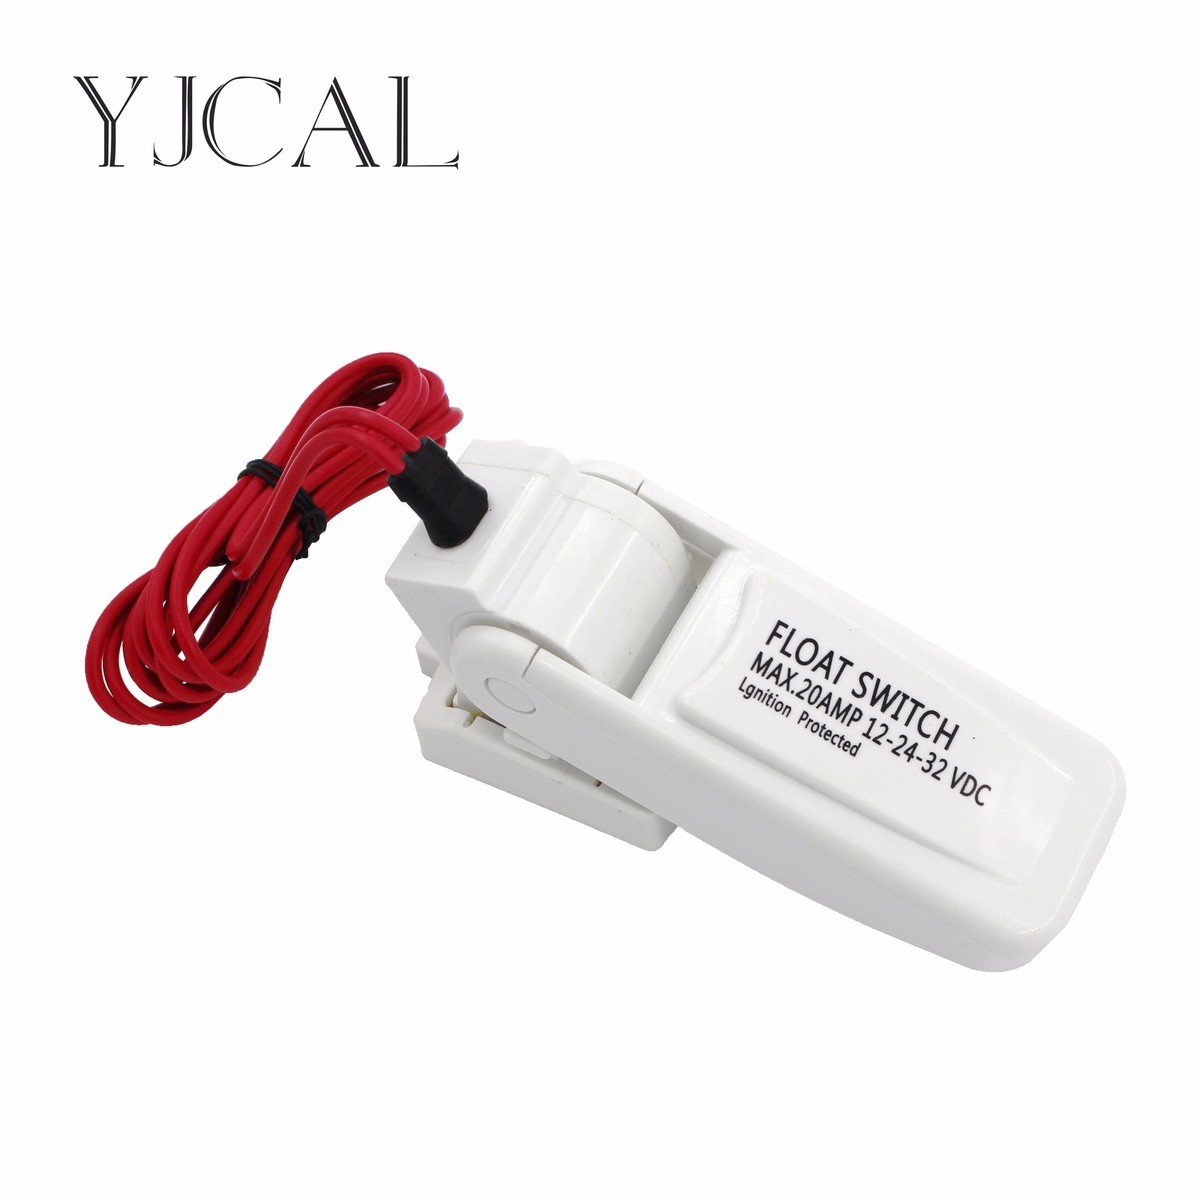 Flow Sensor Automatic Electric Bilge Water Pump Float Switch DC Liquid Auto Toggle Level Controller 20 AMP 12-24-32 VDC mj uqk 6 mini submersible pump with float switch small flow high chemical resistance oil tank level switch liquid level sensor